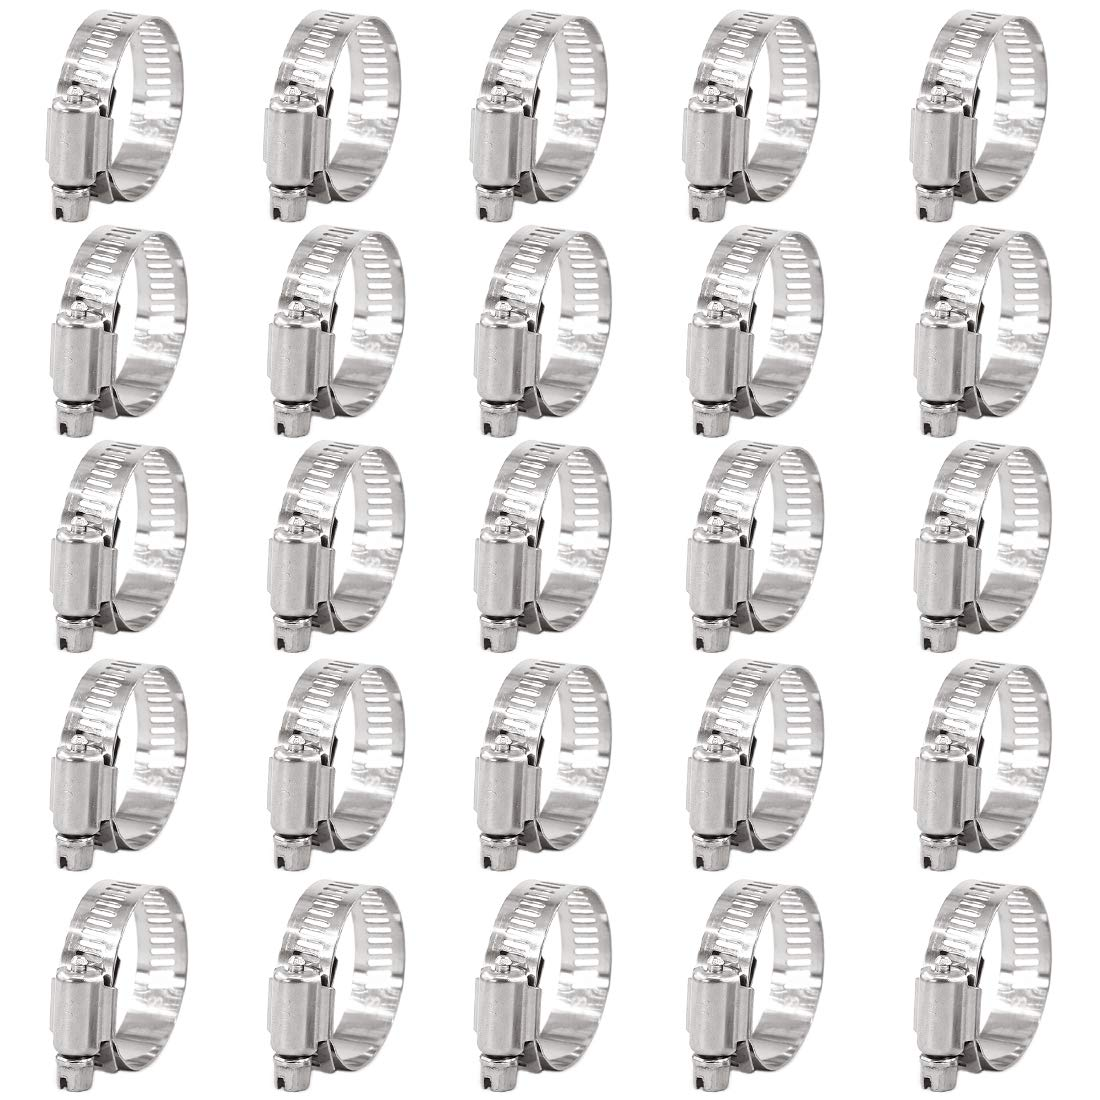 Keadic 25Pcs Adjustable Fuel Line Clips Worm Gear Hose Clamp Assortment Kit for Various Pipes Automotive Mechanical Use 27-51mm 304 Stainless Steel